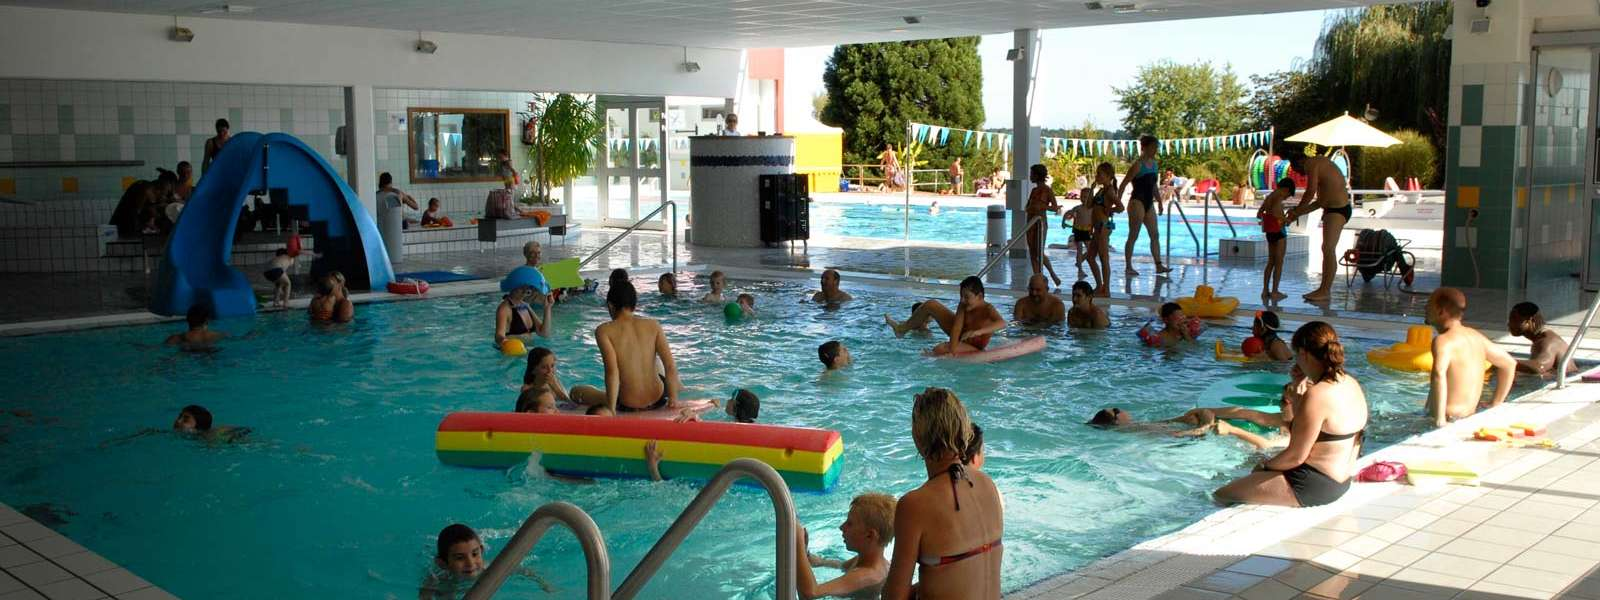 apps.tourisme-alsace.info/photos/niederbronn/photos/piscine-aqualies-5.JPG